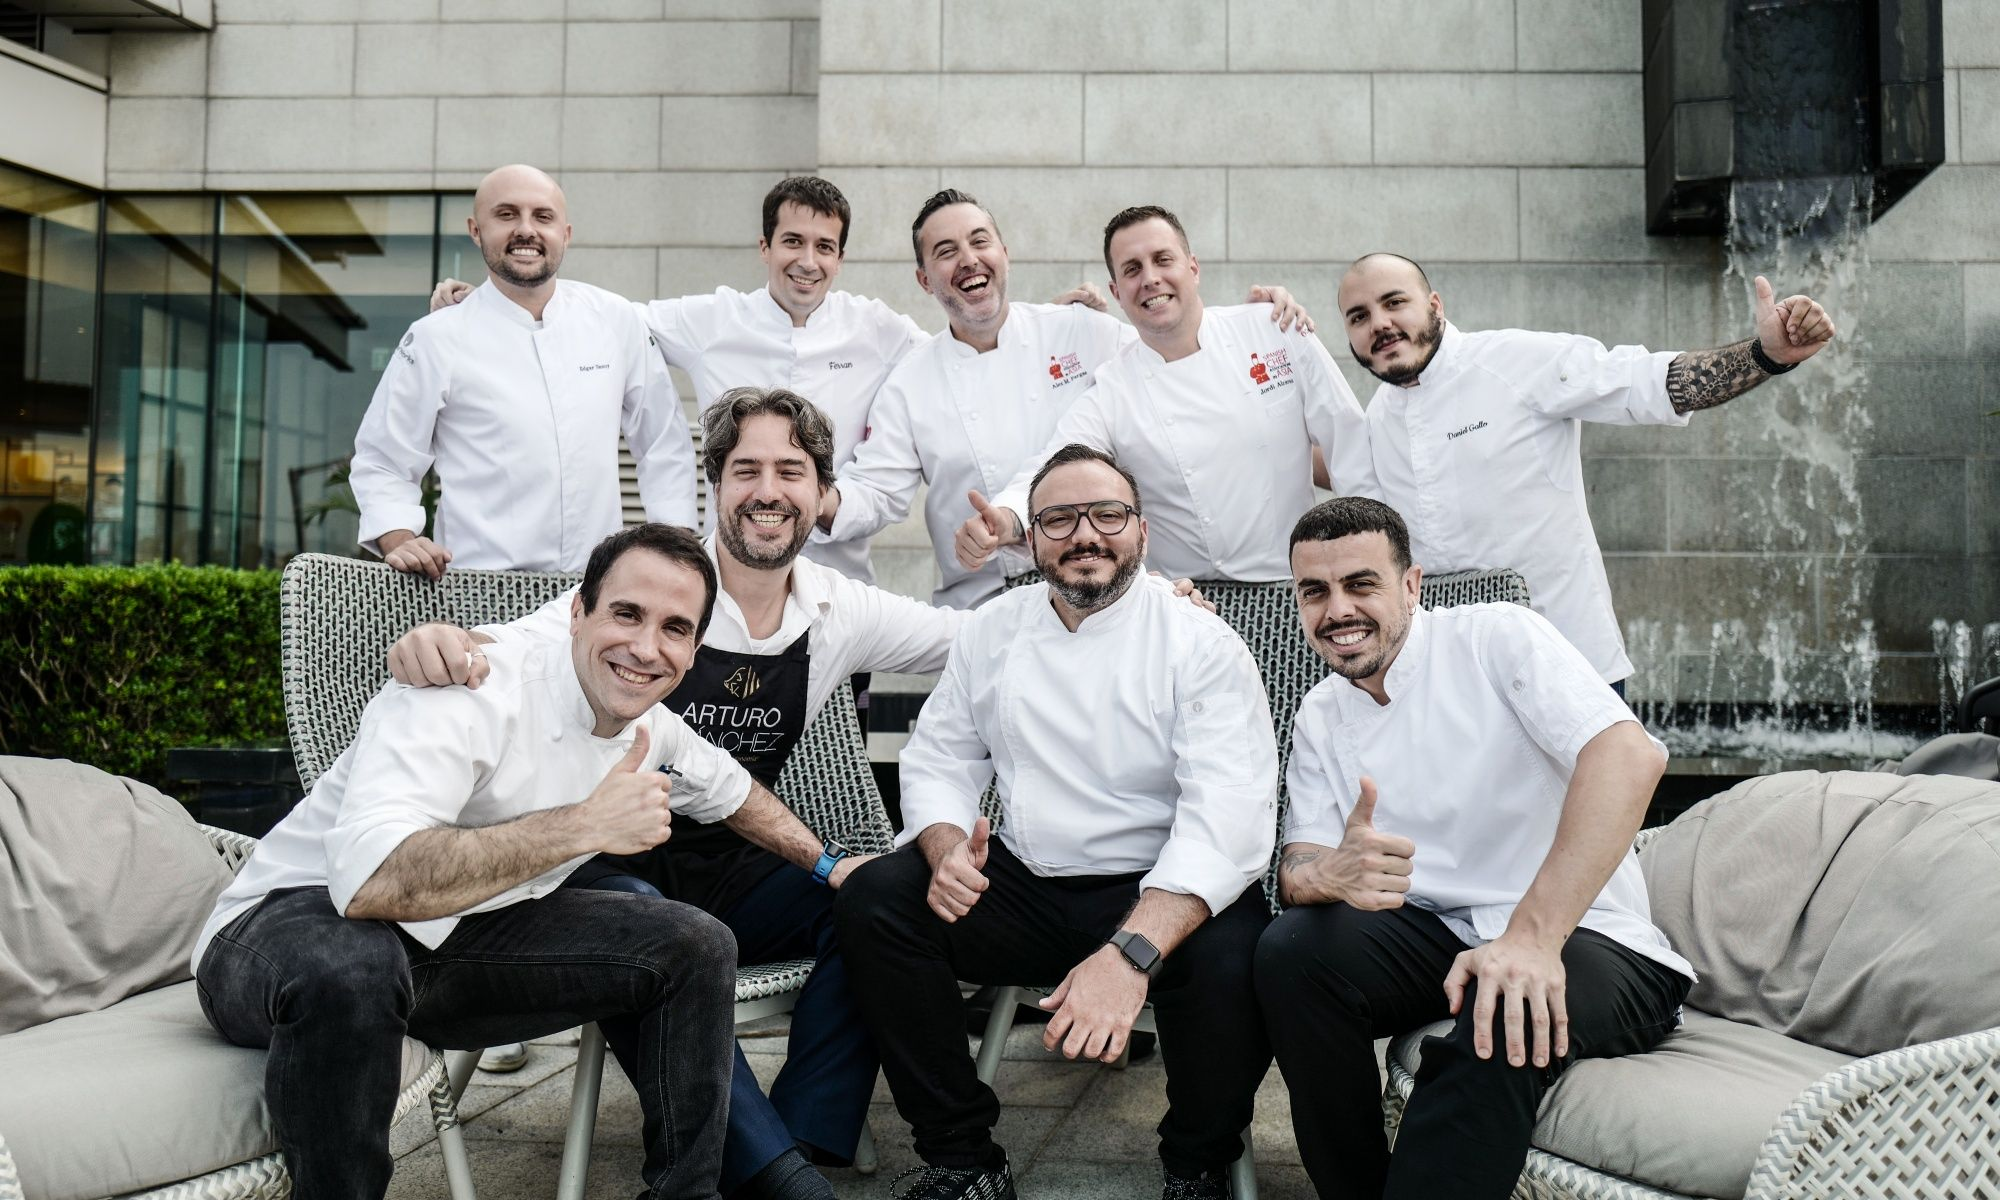 Hong Kong's Spanish Chefs To Cook For Charity At La Rambla On April 29